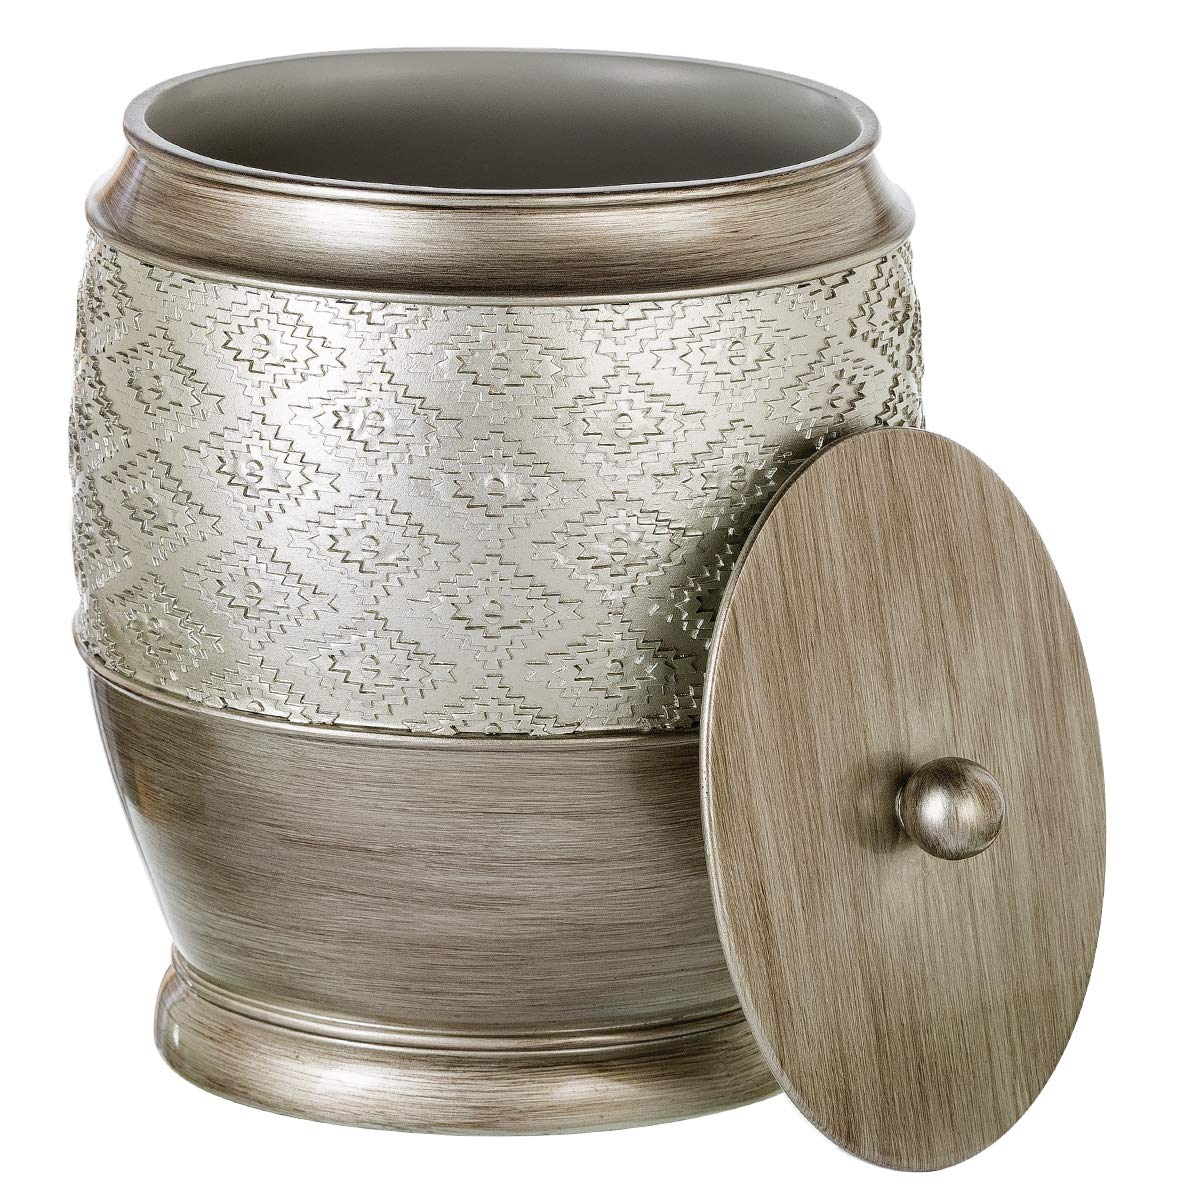 Dublin Low price Special sale item Bathroom Trash Can with Lid Resin Small Garb - Decorative